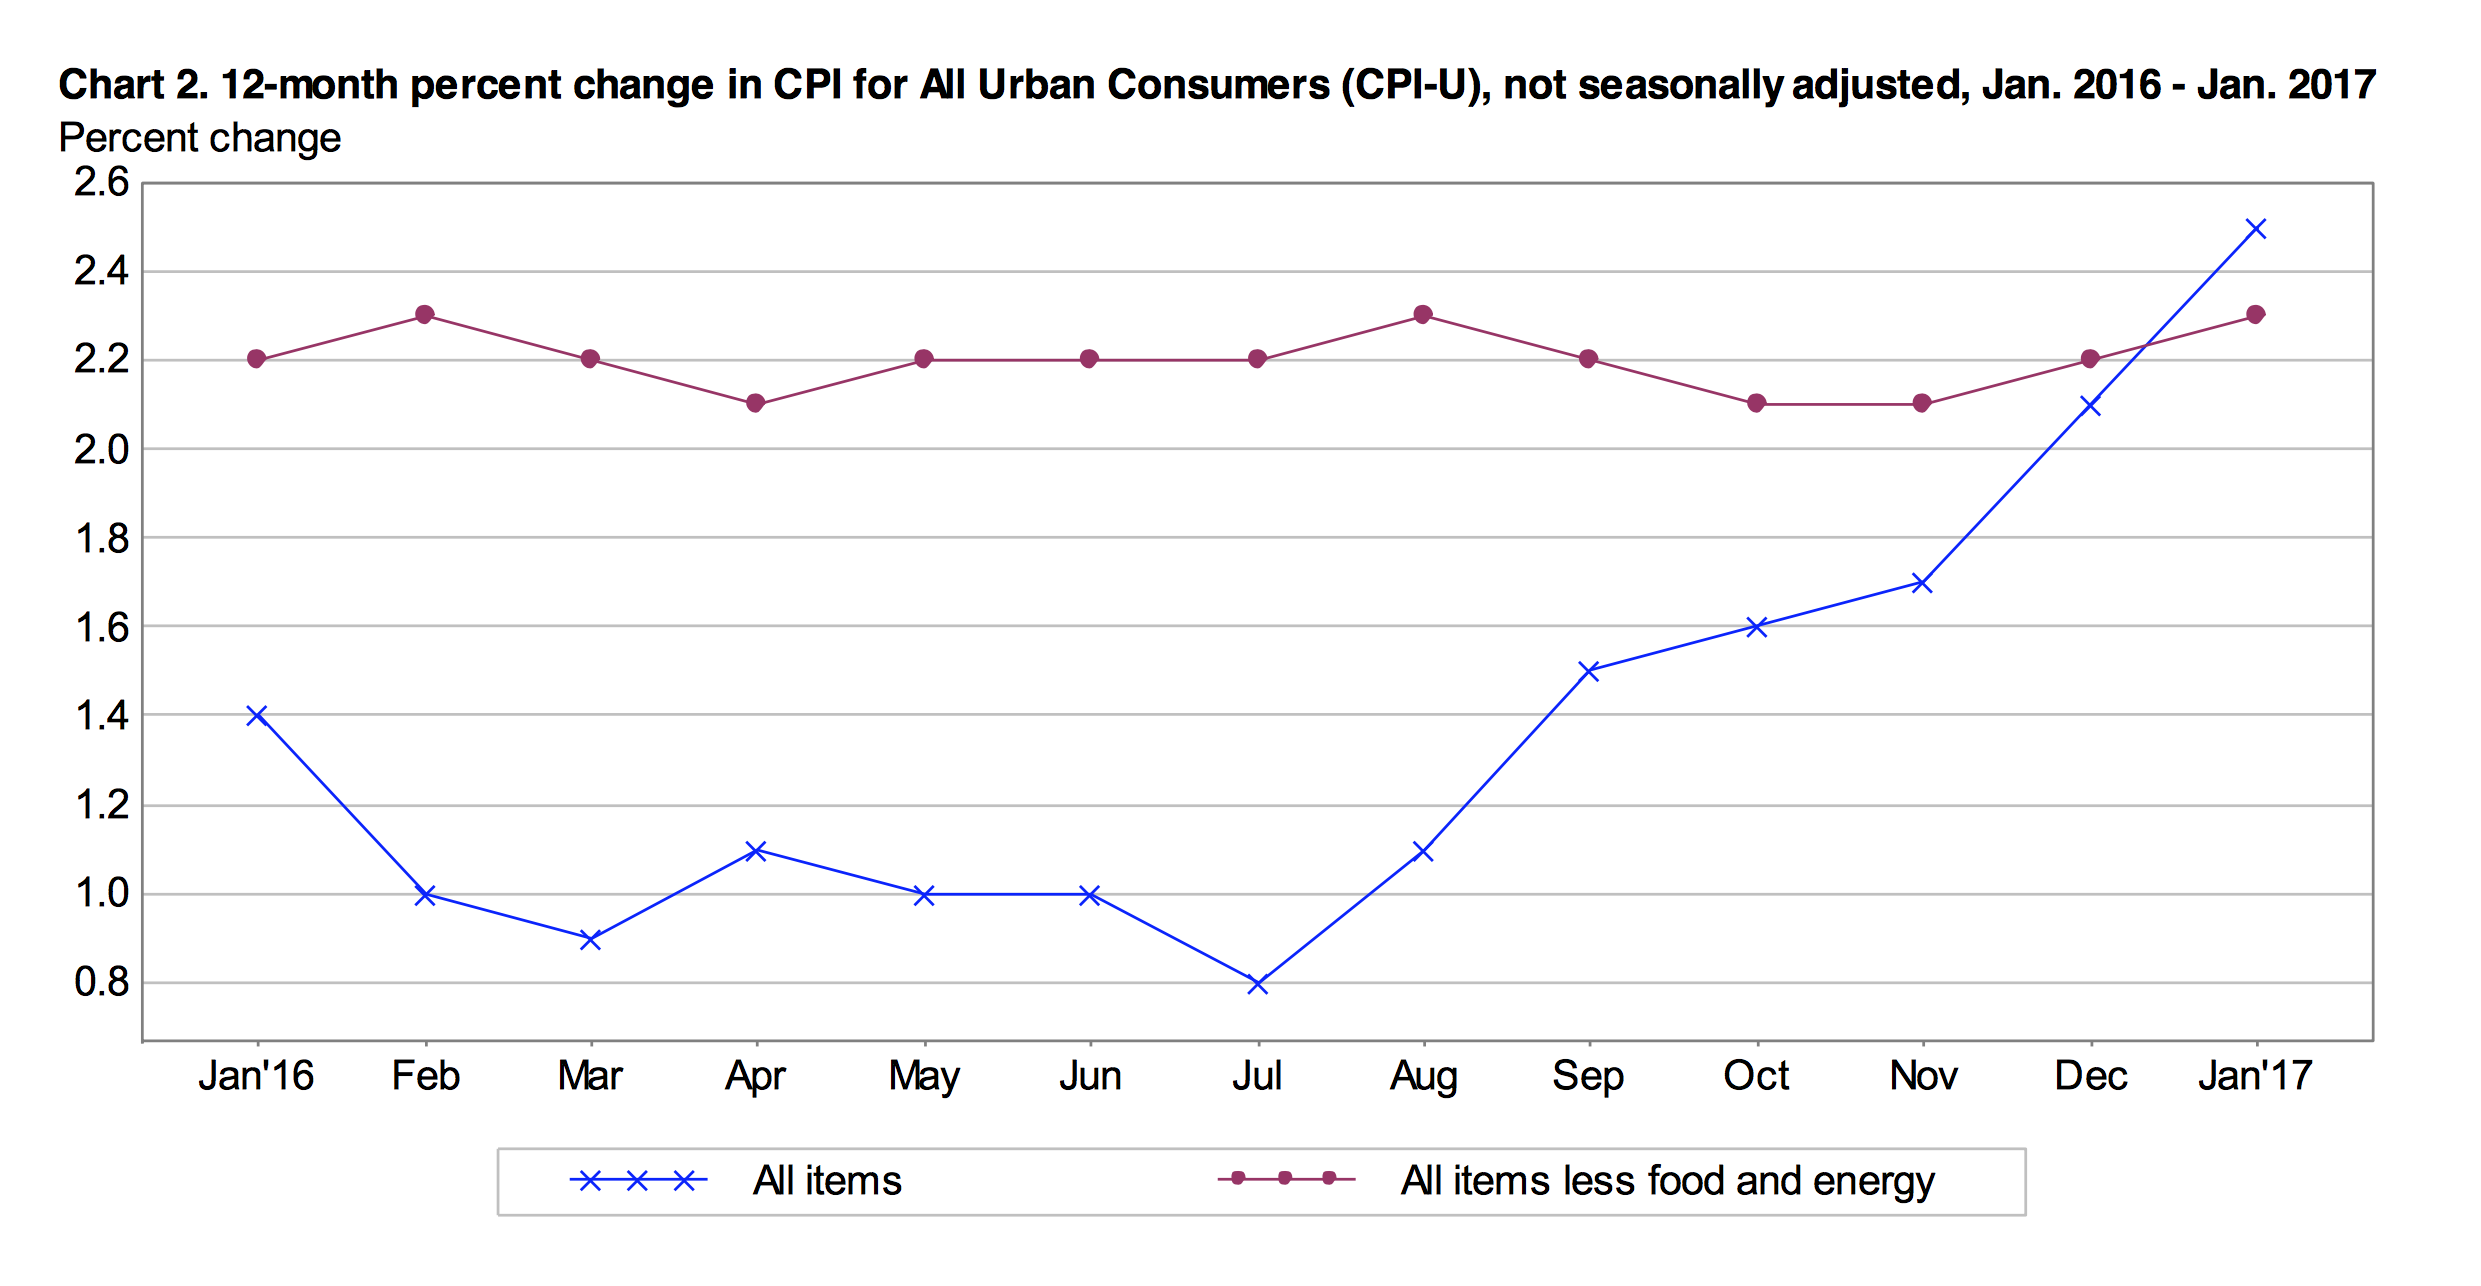 However The Cpi U Is Not Their Preferred Measure Of Inflation They Focus More On Personal